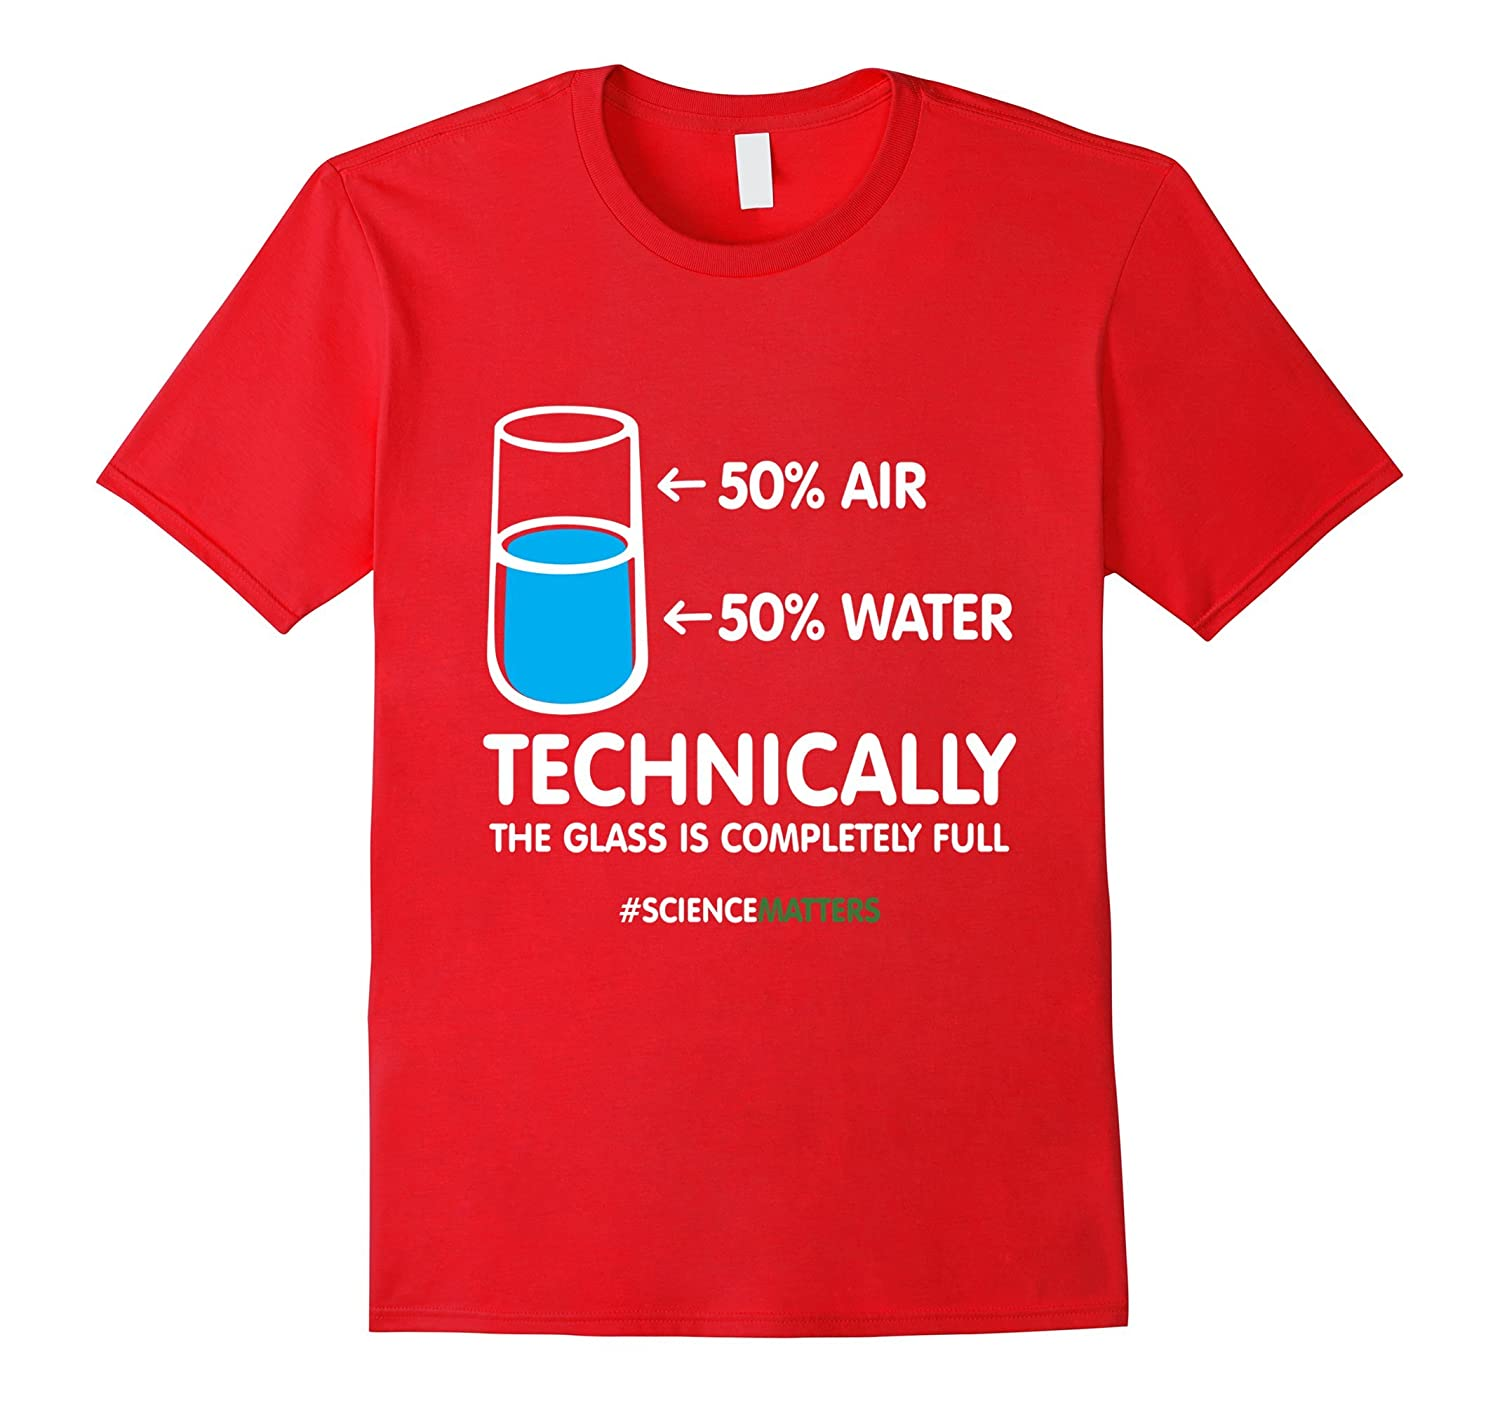 Funny Pro Science Tshirt - Great Gift For Science Fans.-BN